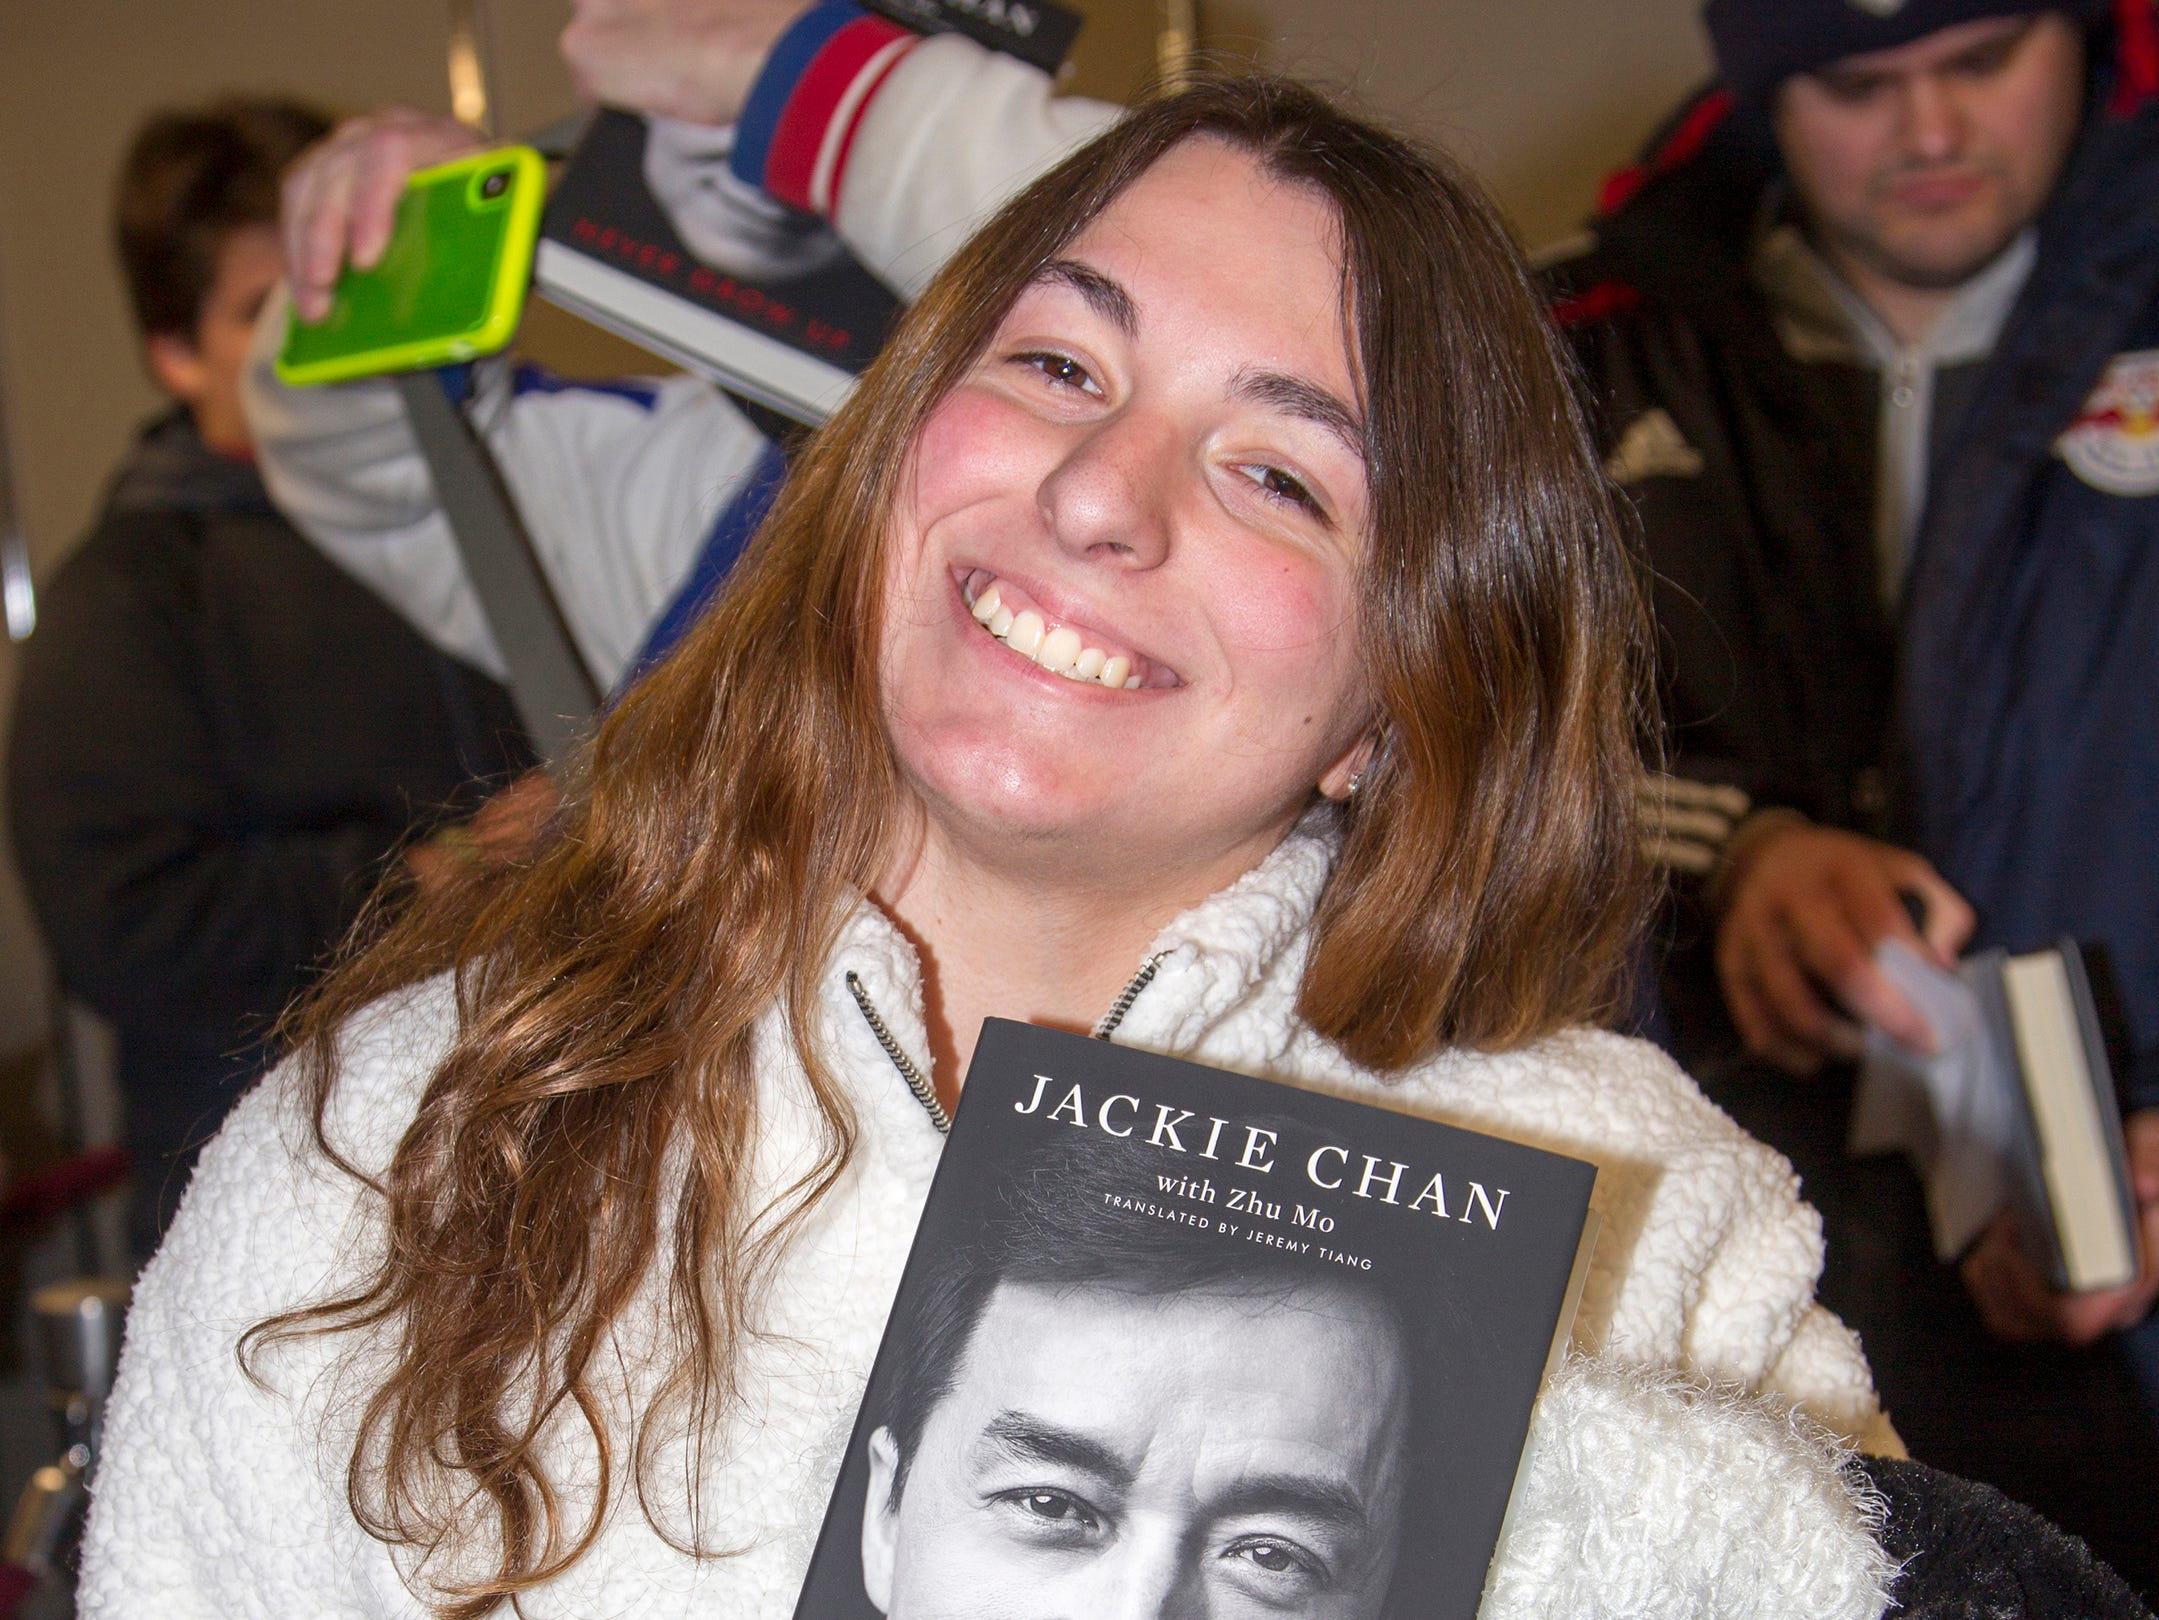 """Lauren. Jackie Chan greets fans at Bookends in Ridgewood while signing his new book, """"Never Grow Up."""" 01/21/2019"""